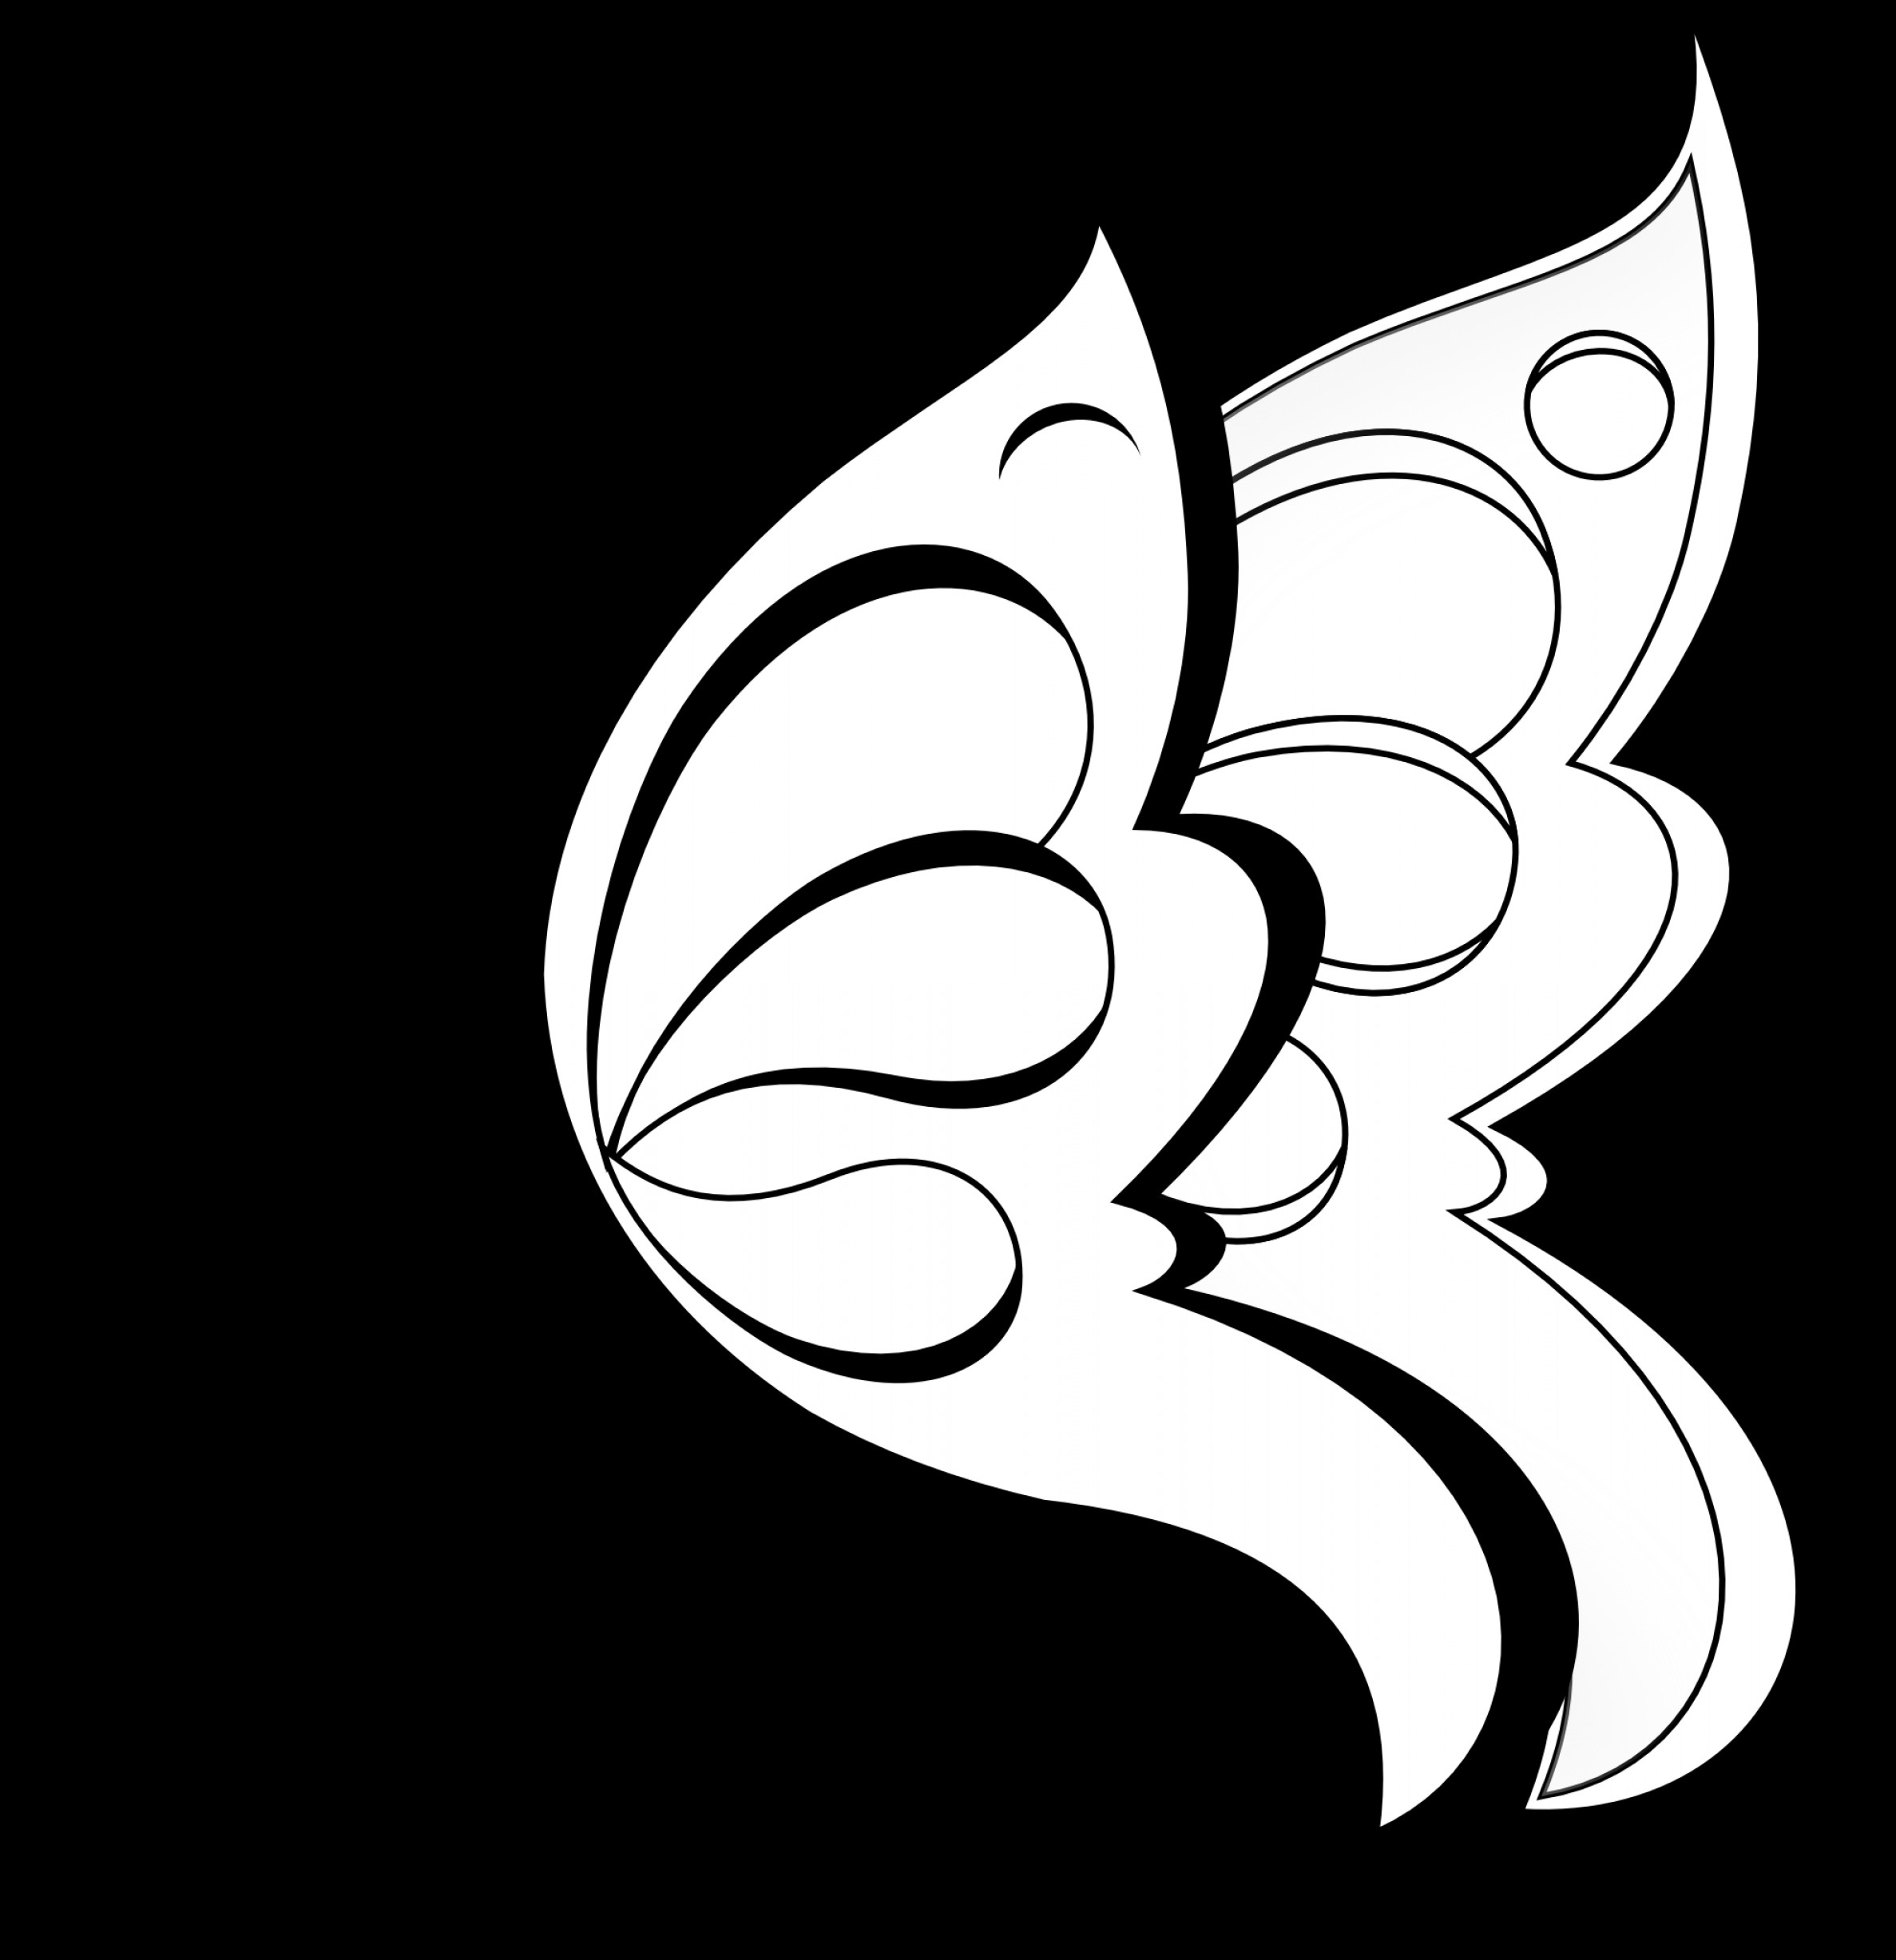 Vector Butterfly Clip Art: Free Butterfly Clipart Black And White